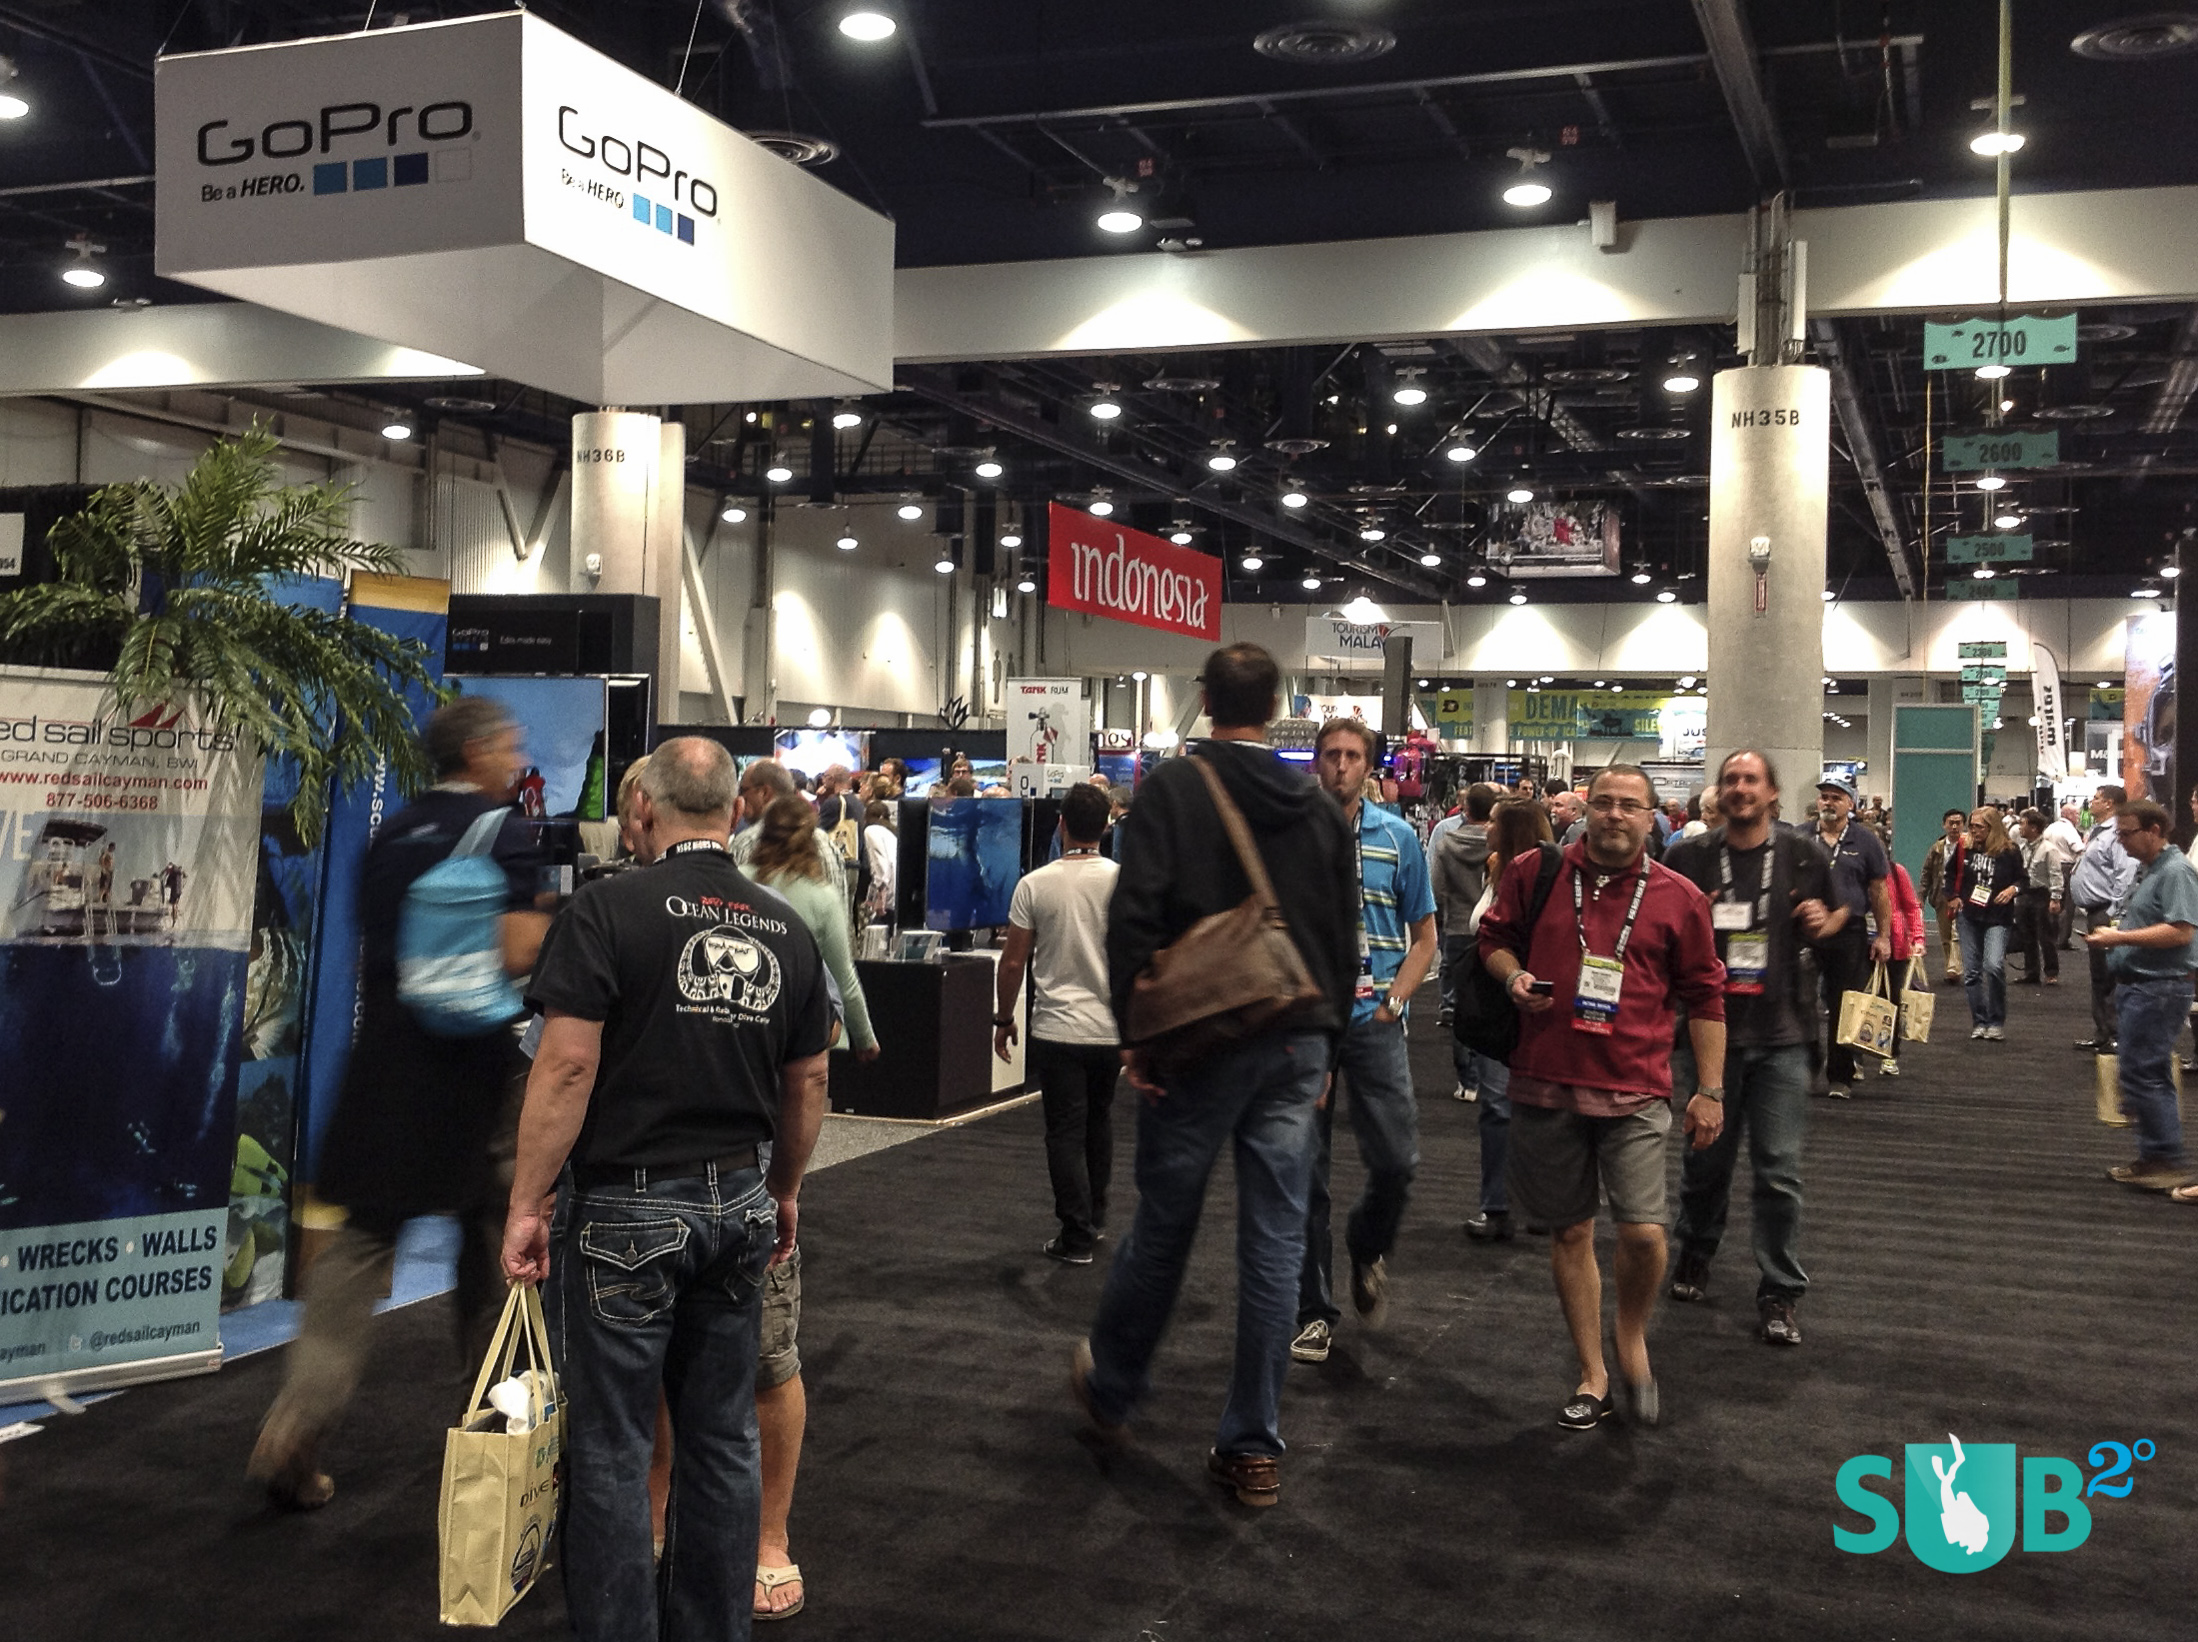 Exploring the many exhibitors at the 2014 DEMA Show in Las Vegas.